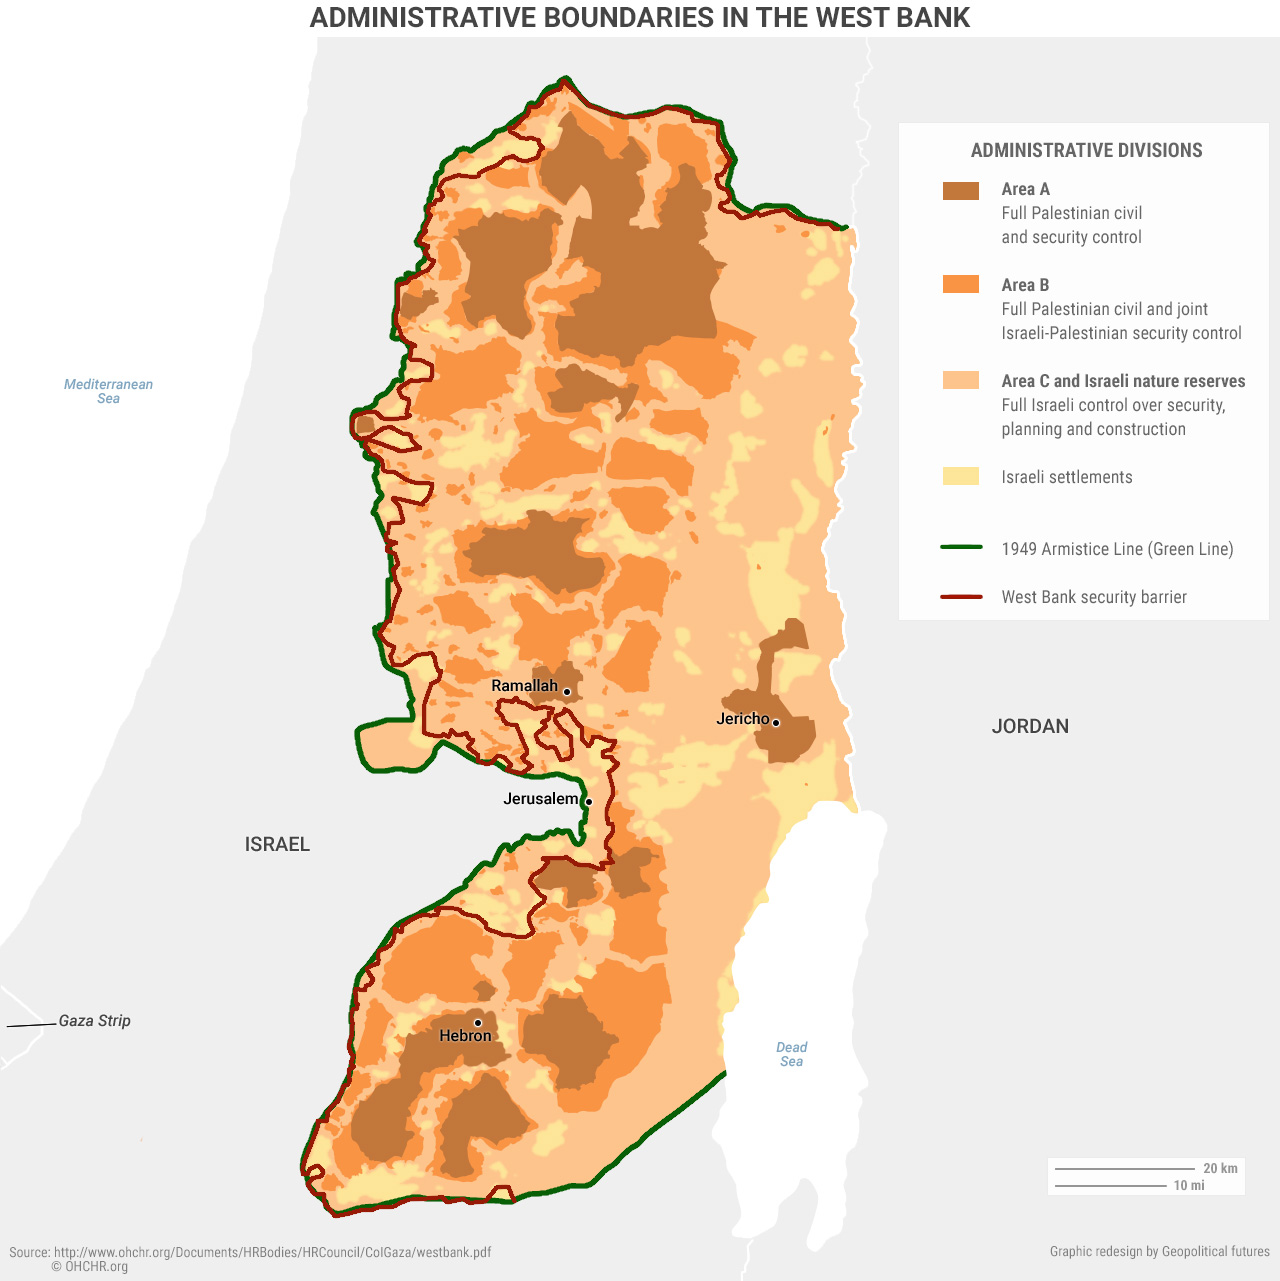 Administrative Boundaries in the West Bank